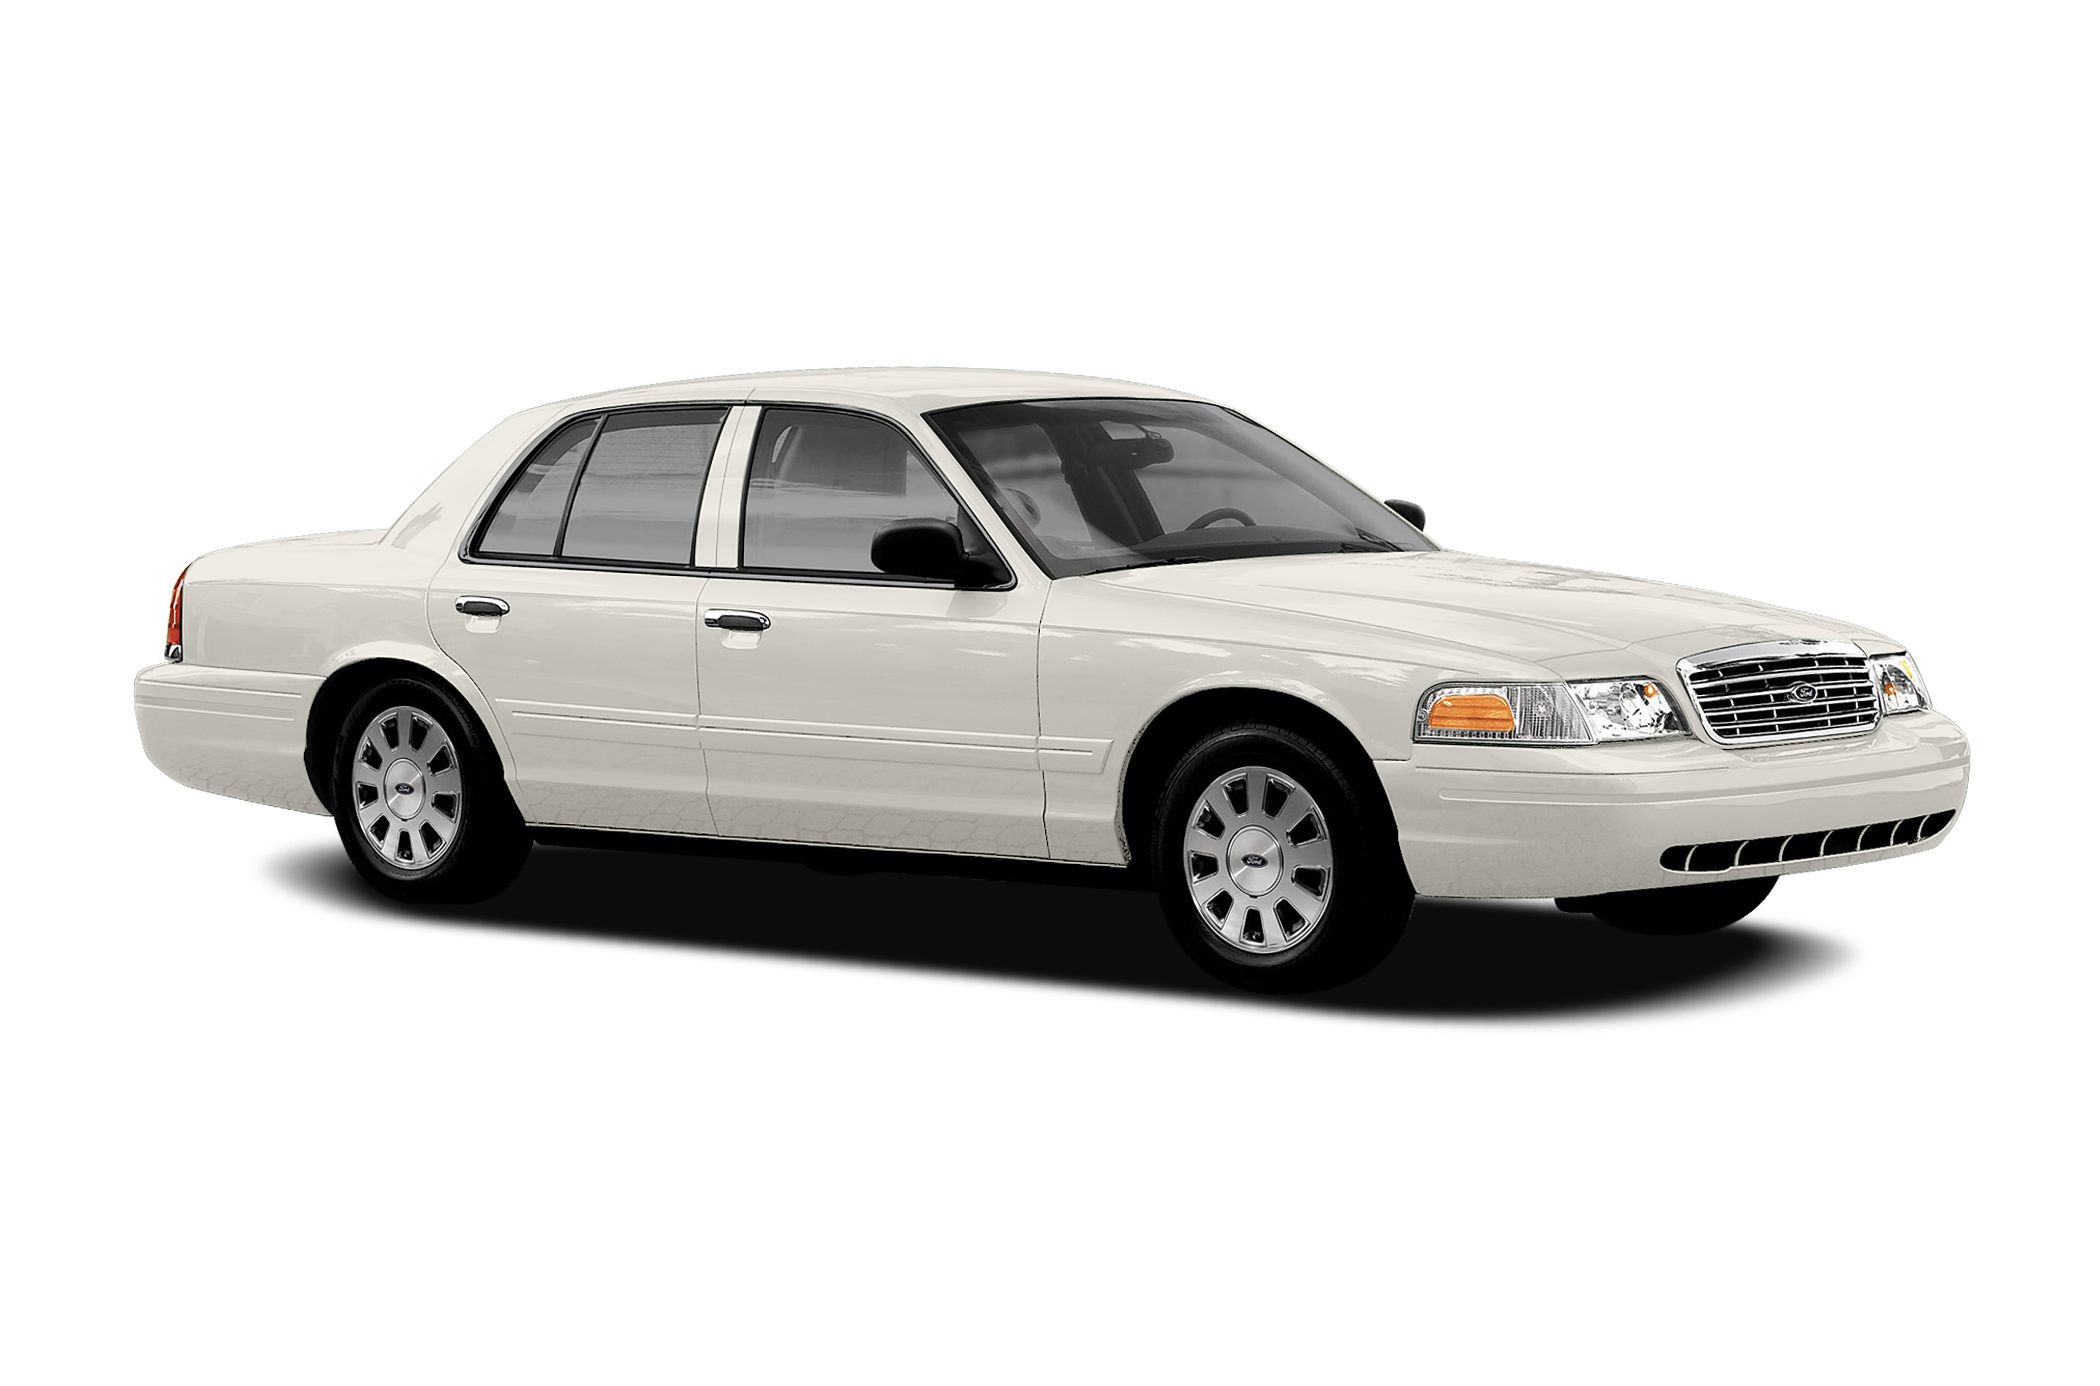 2007FordCrown Victoria